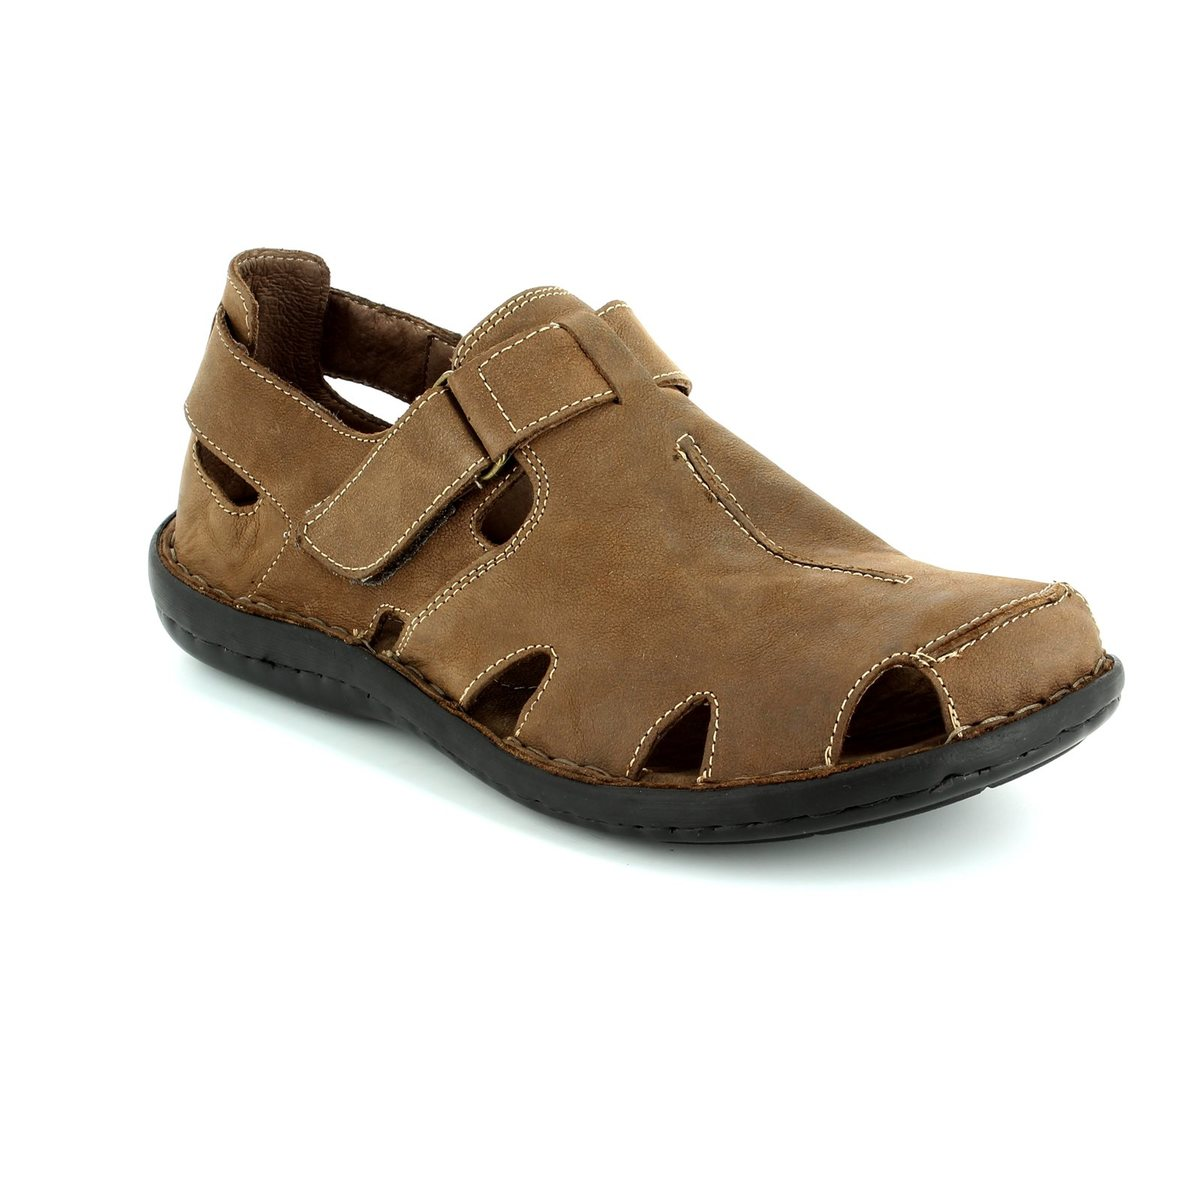 walk in the city closed 7107 11120 brown sandals